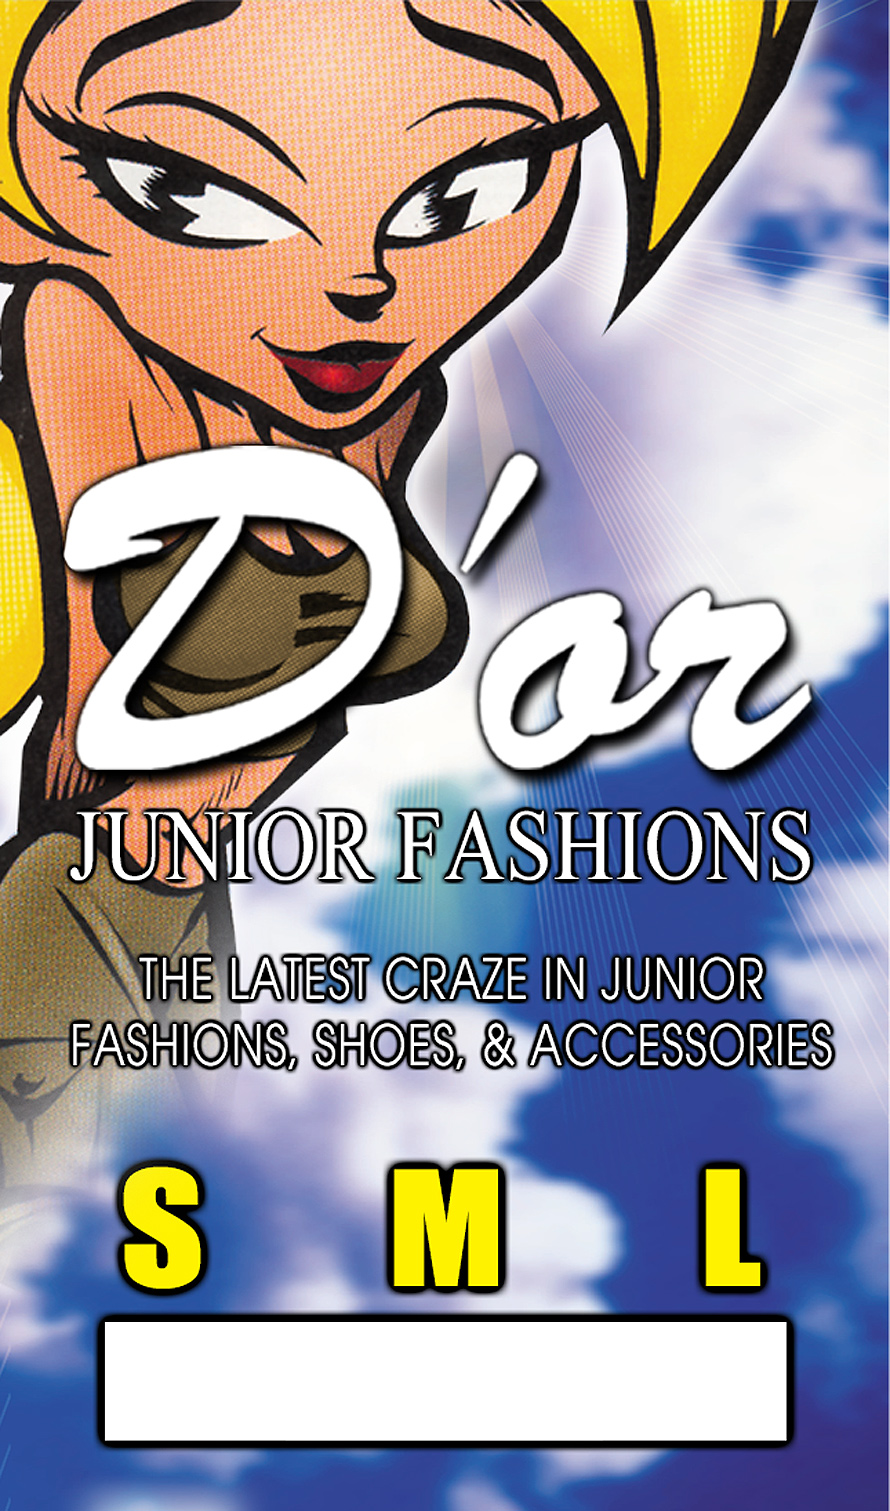 D'or Junior Fashions